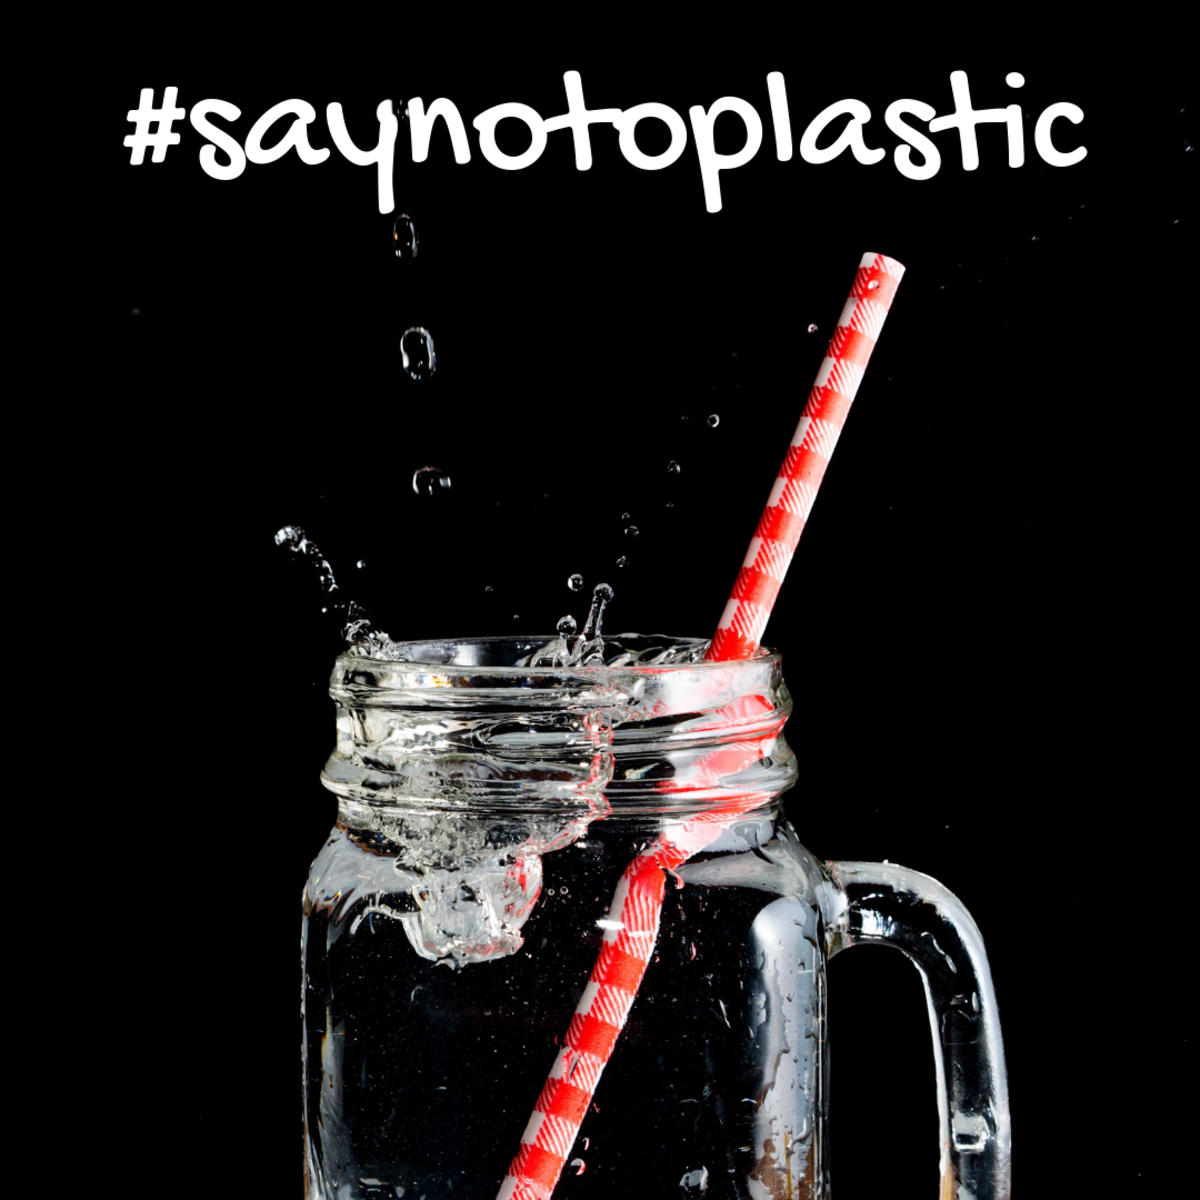 Banning straws wont save the world, but it will make a dent.